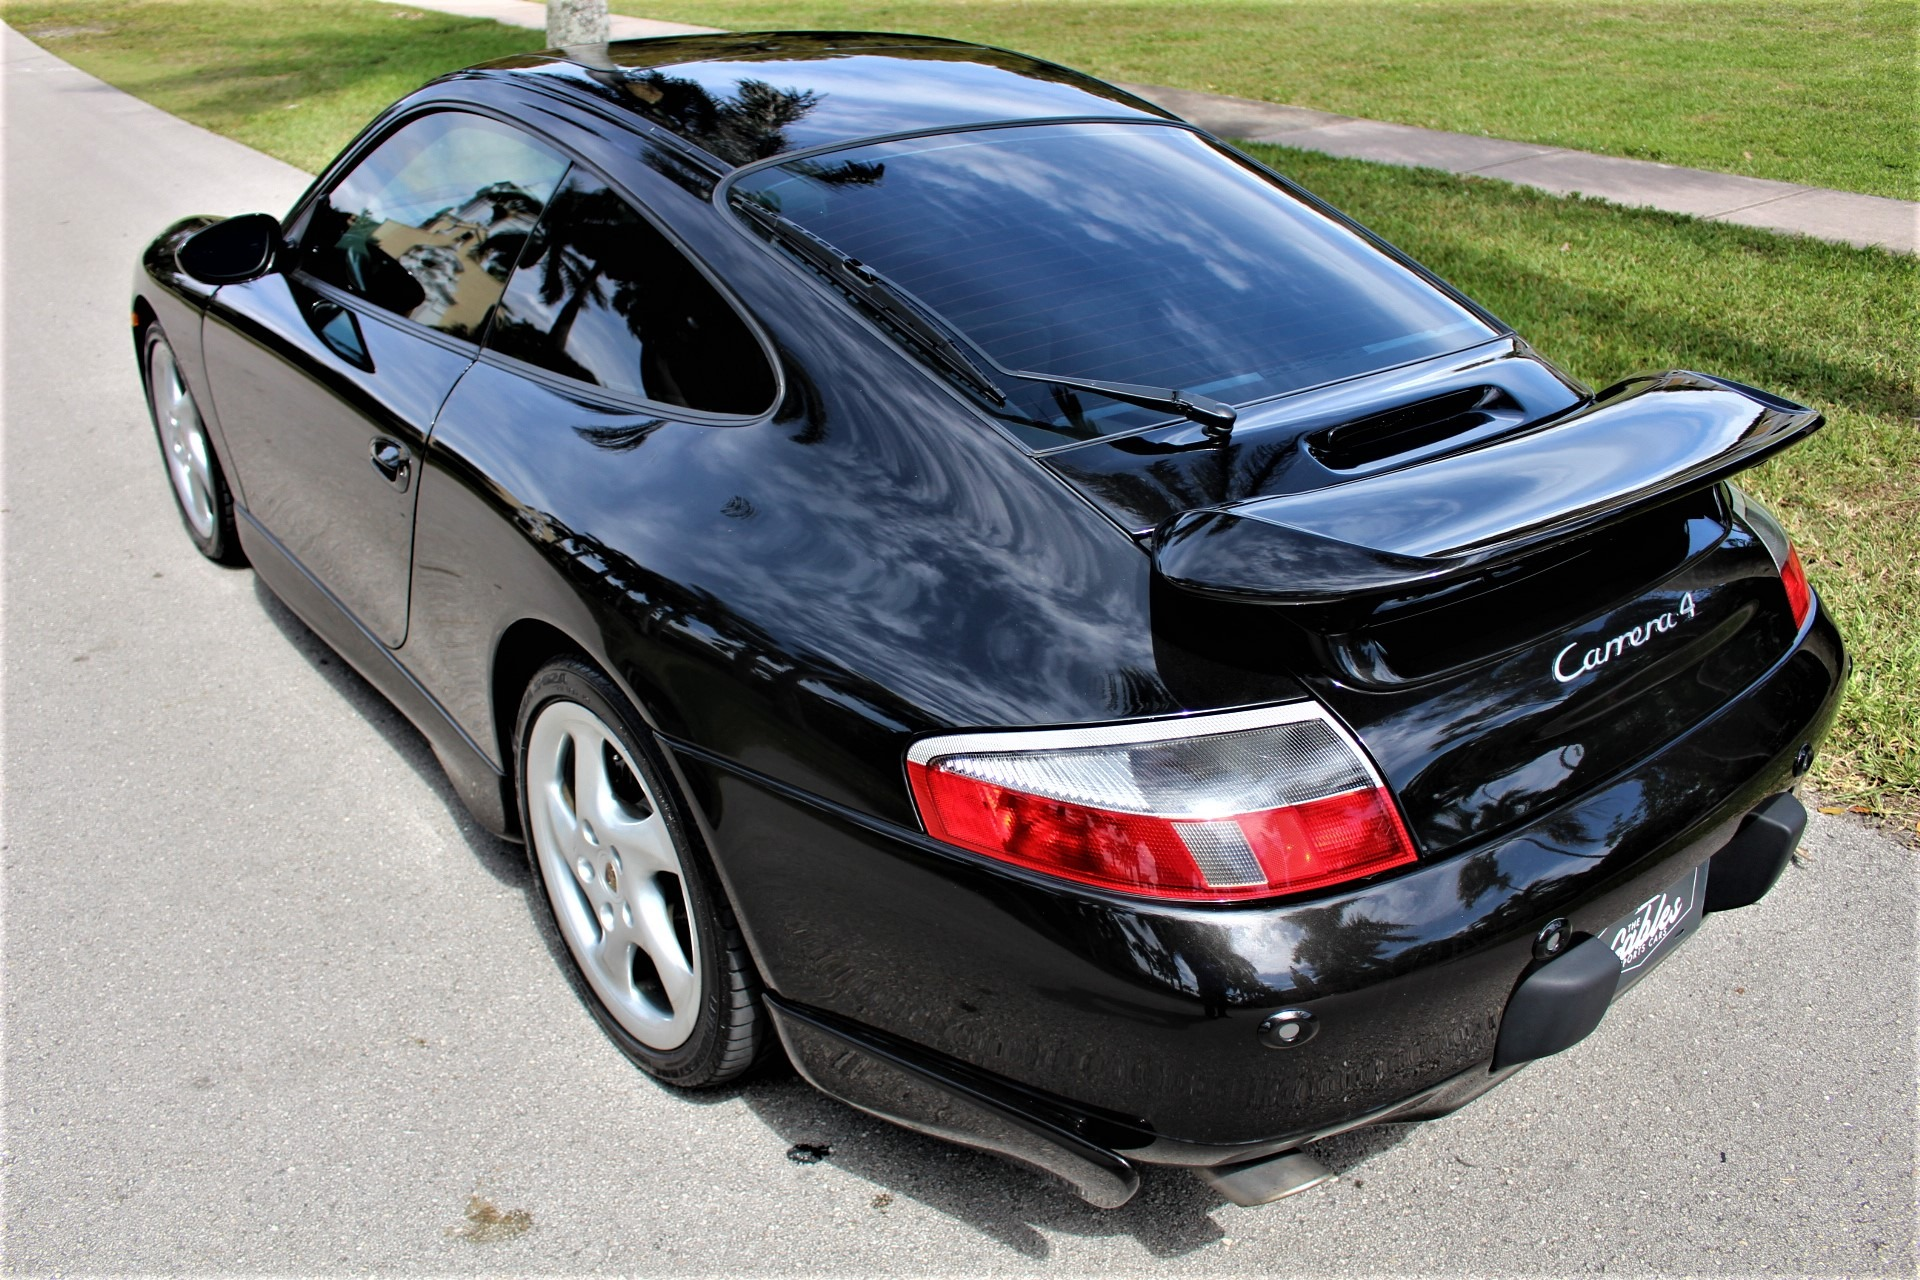 Used 2001 Porsche 911 Carrera 4 for sale Sold at The Gables Sports Cars in Miami FL 33146 3